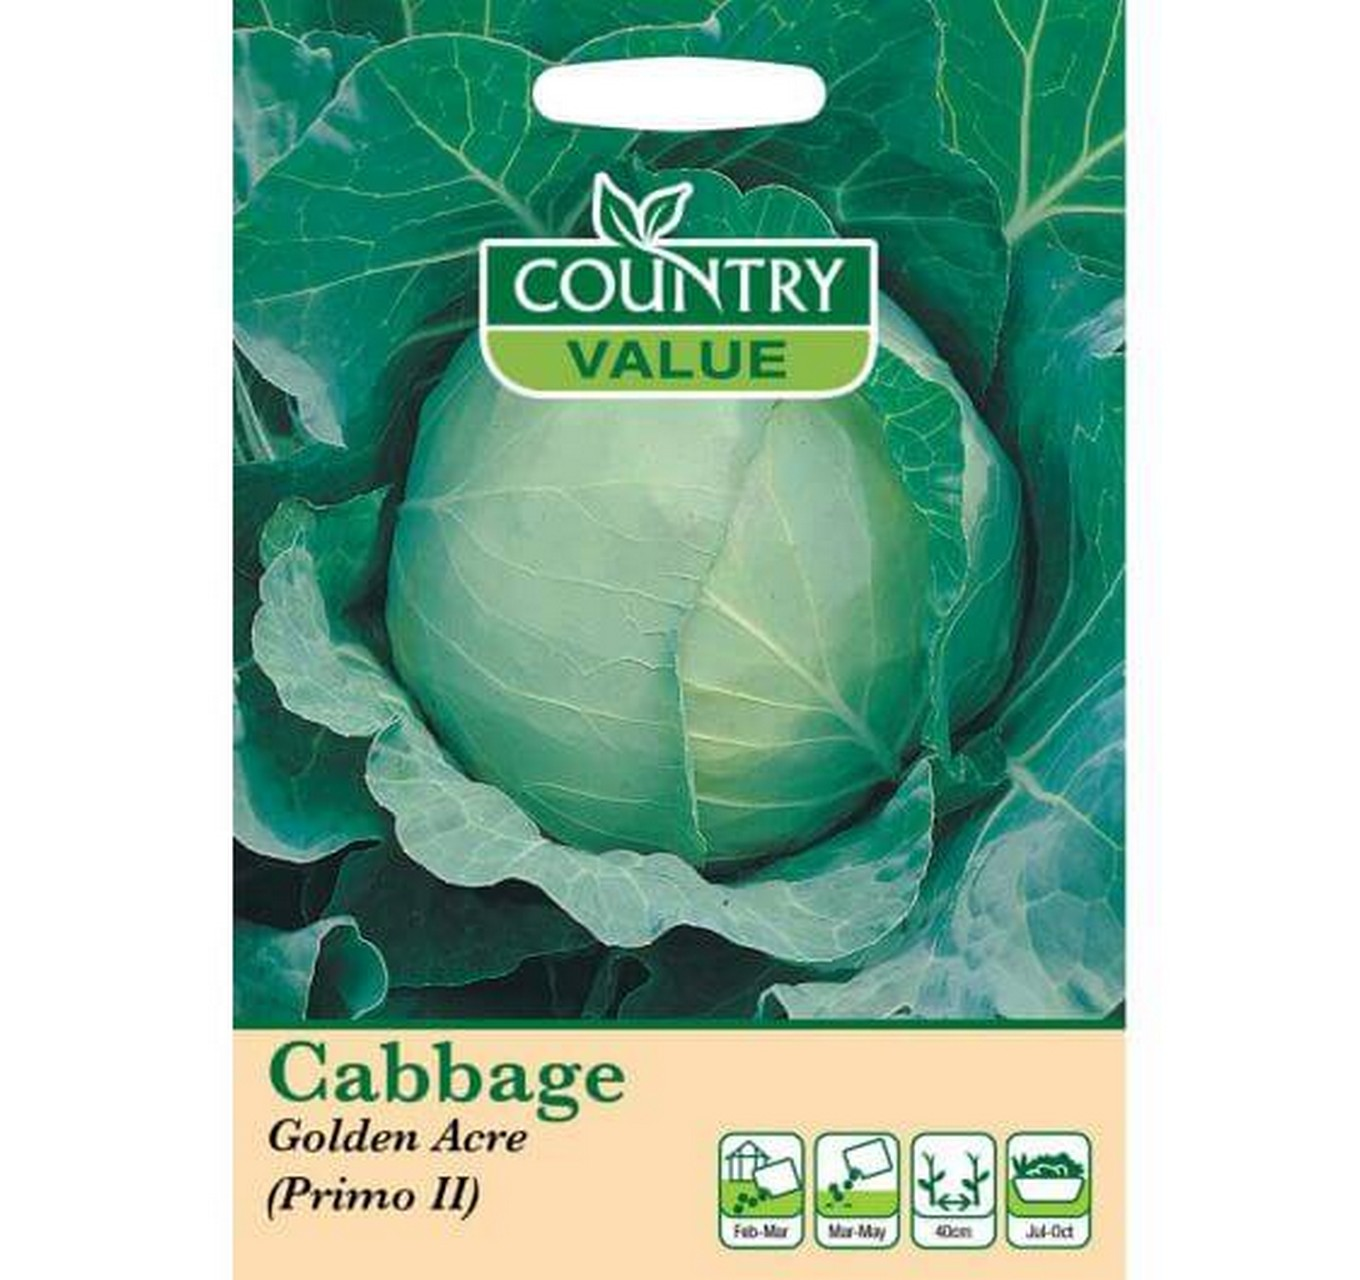 Cabbage Golden Acre (Pimo II)